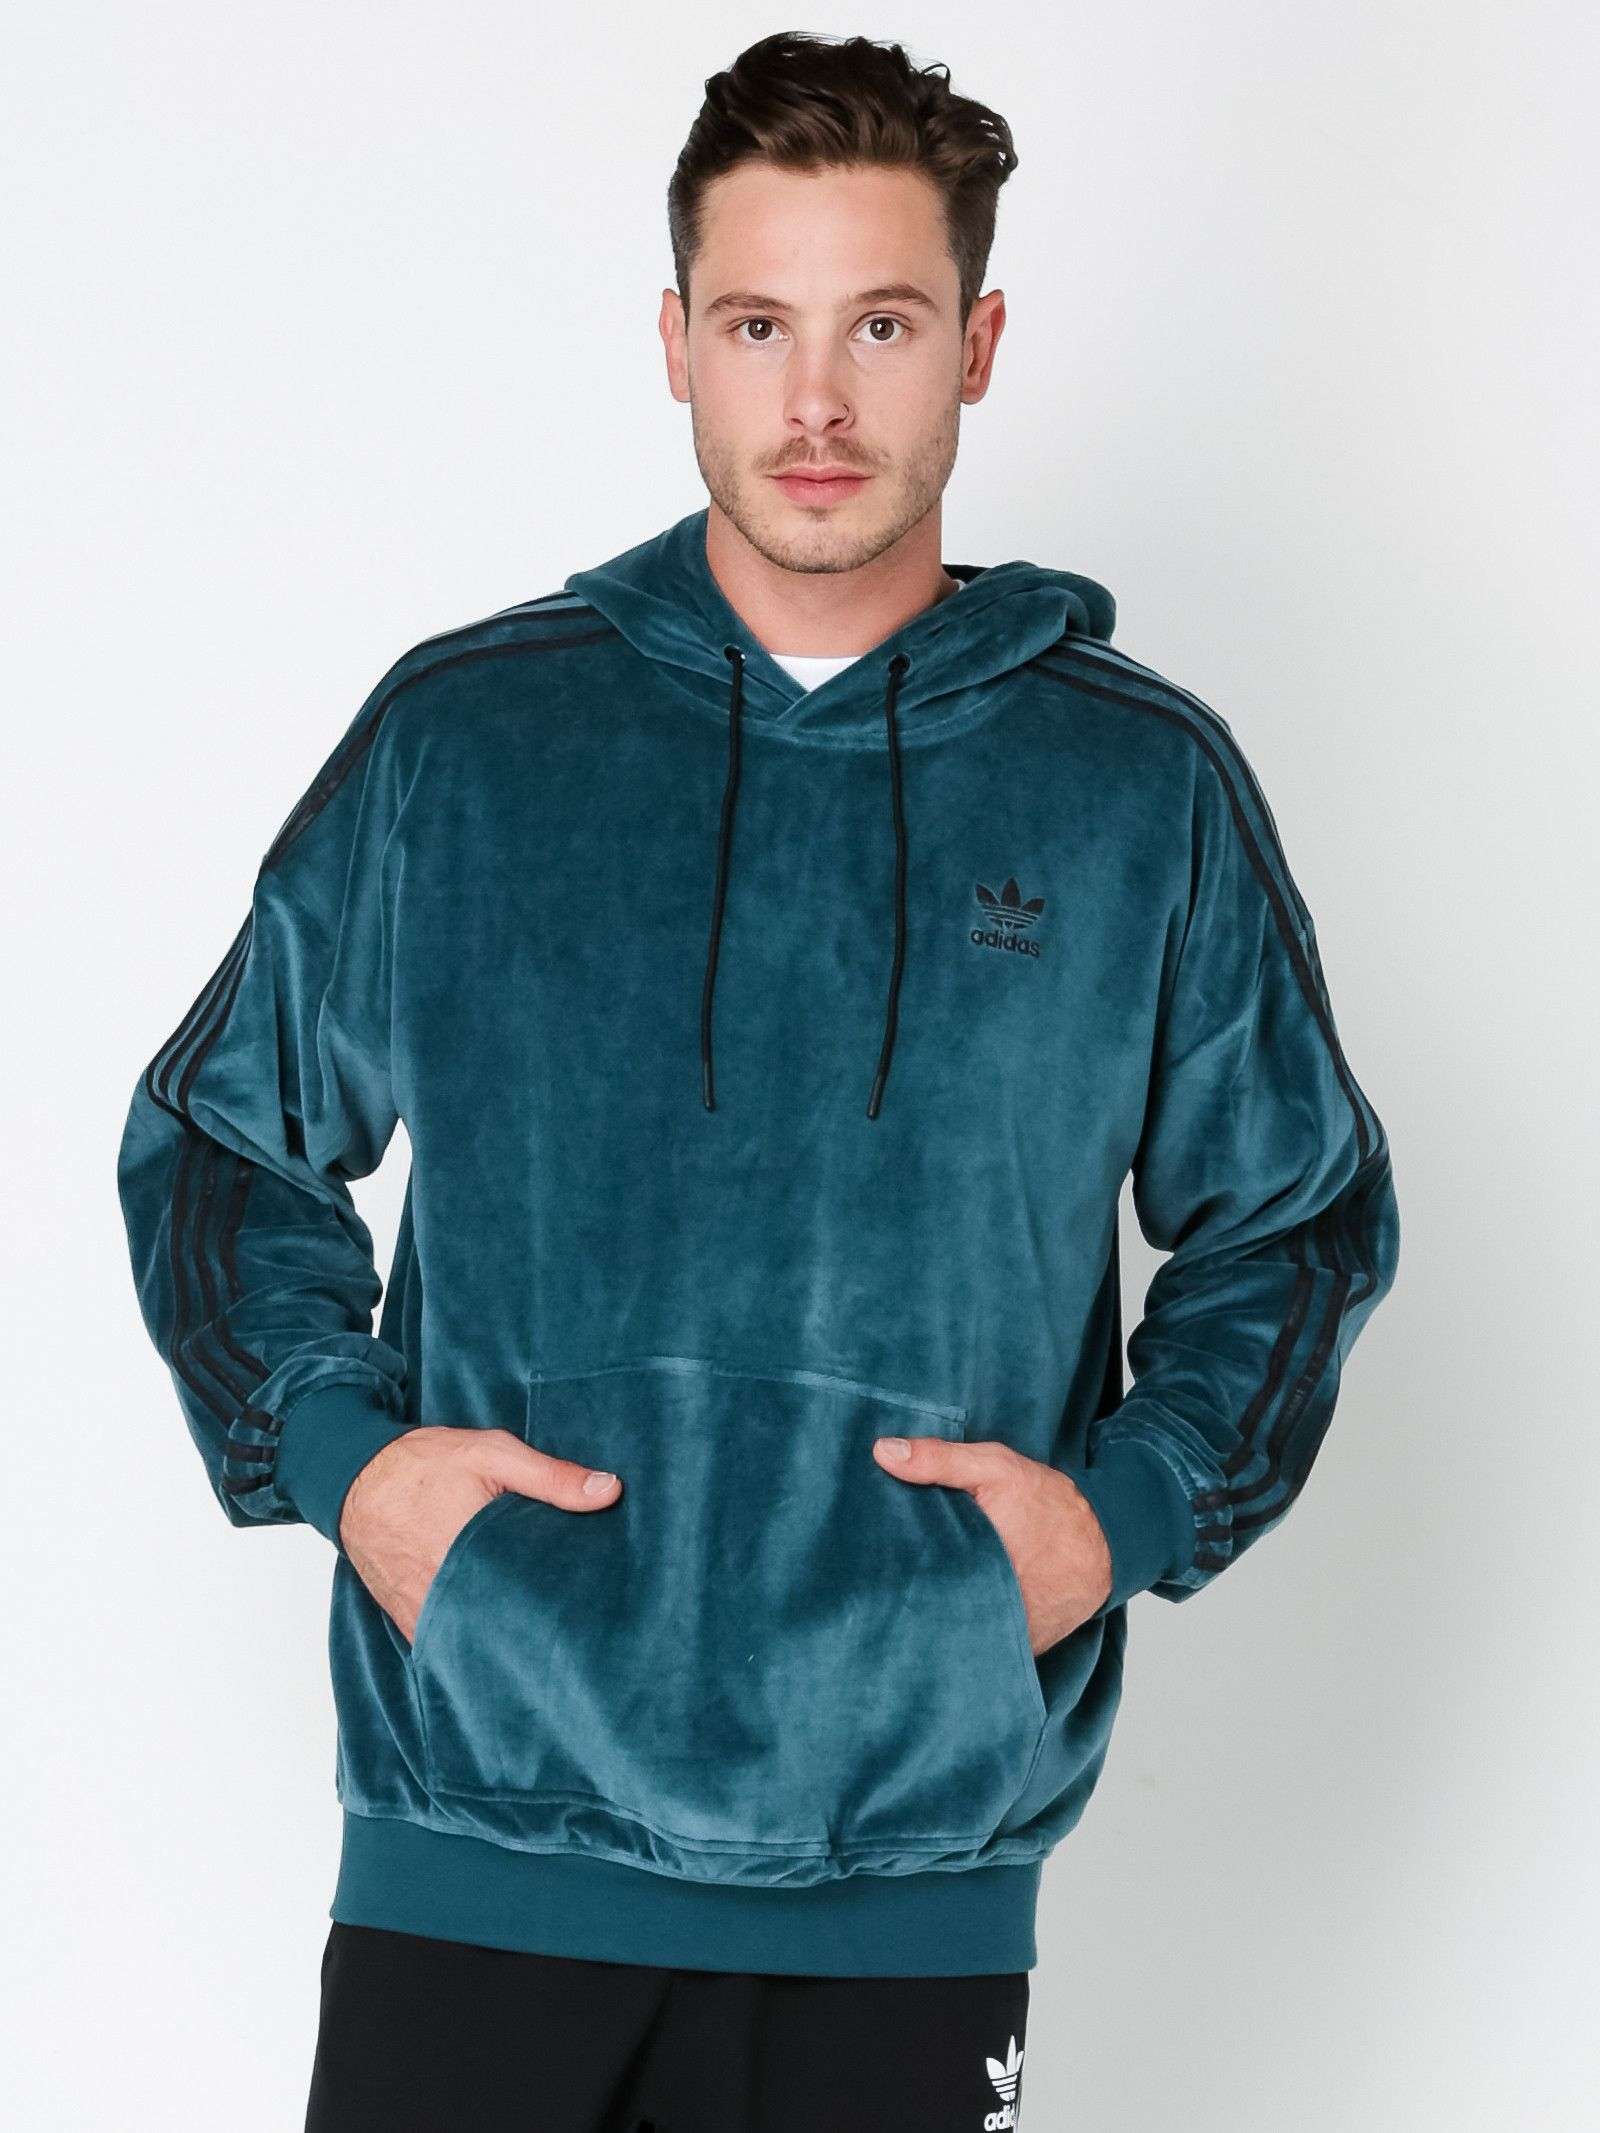 34 Awesome Adidas Velour Hoodie Inspirations Adidas Outfit Men Velour Hoodie Hoodies [ 2133 x 1600 Pixel ]